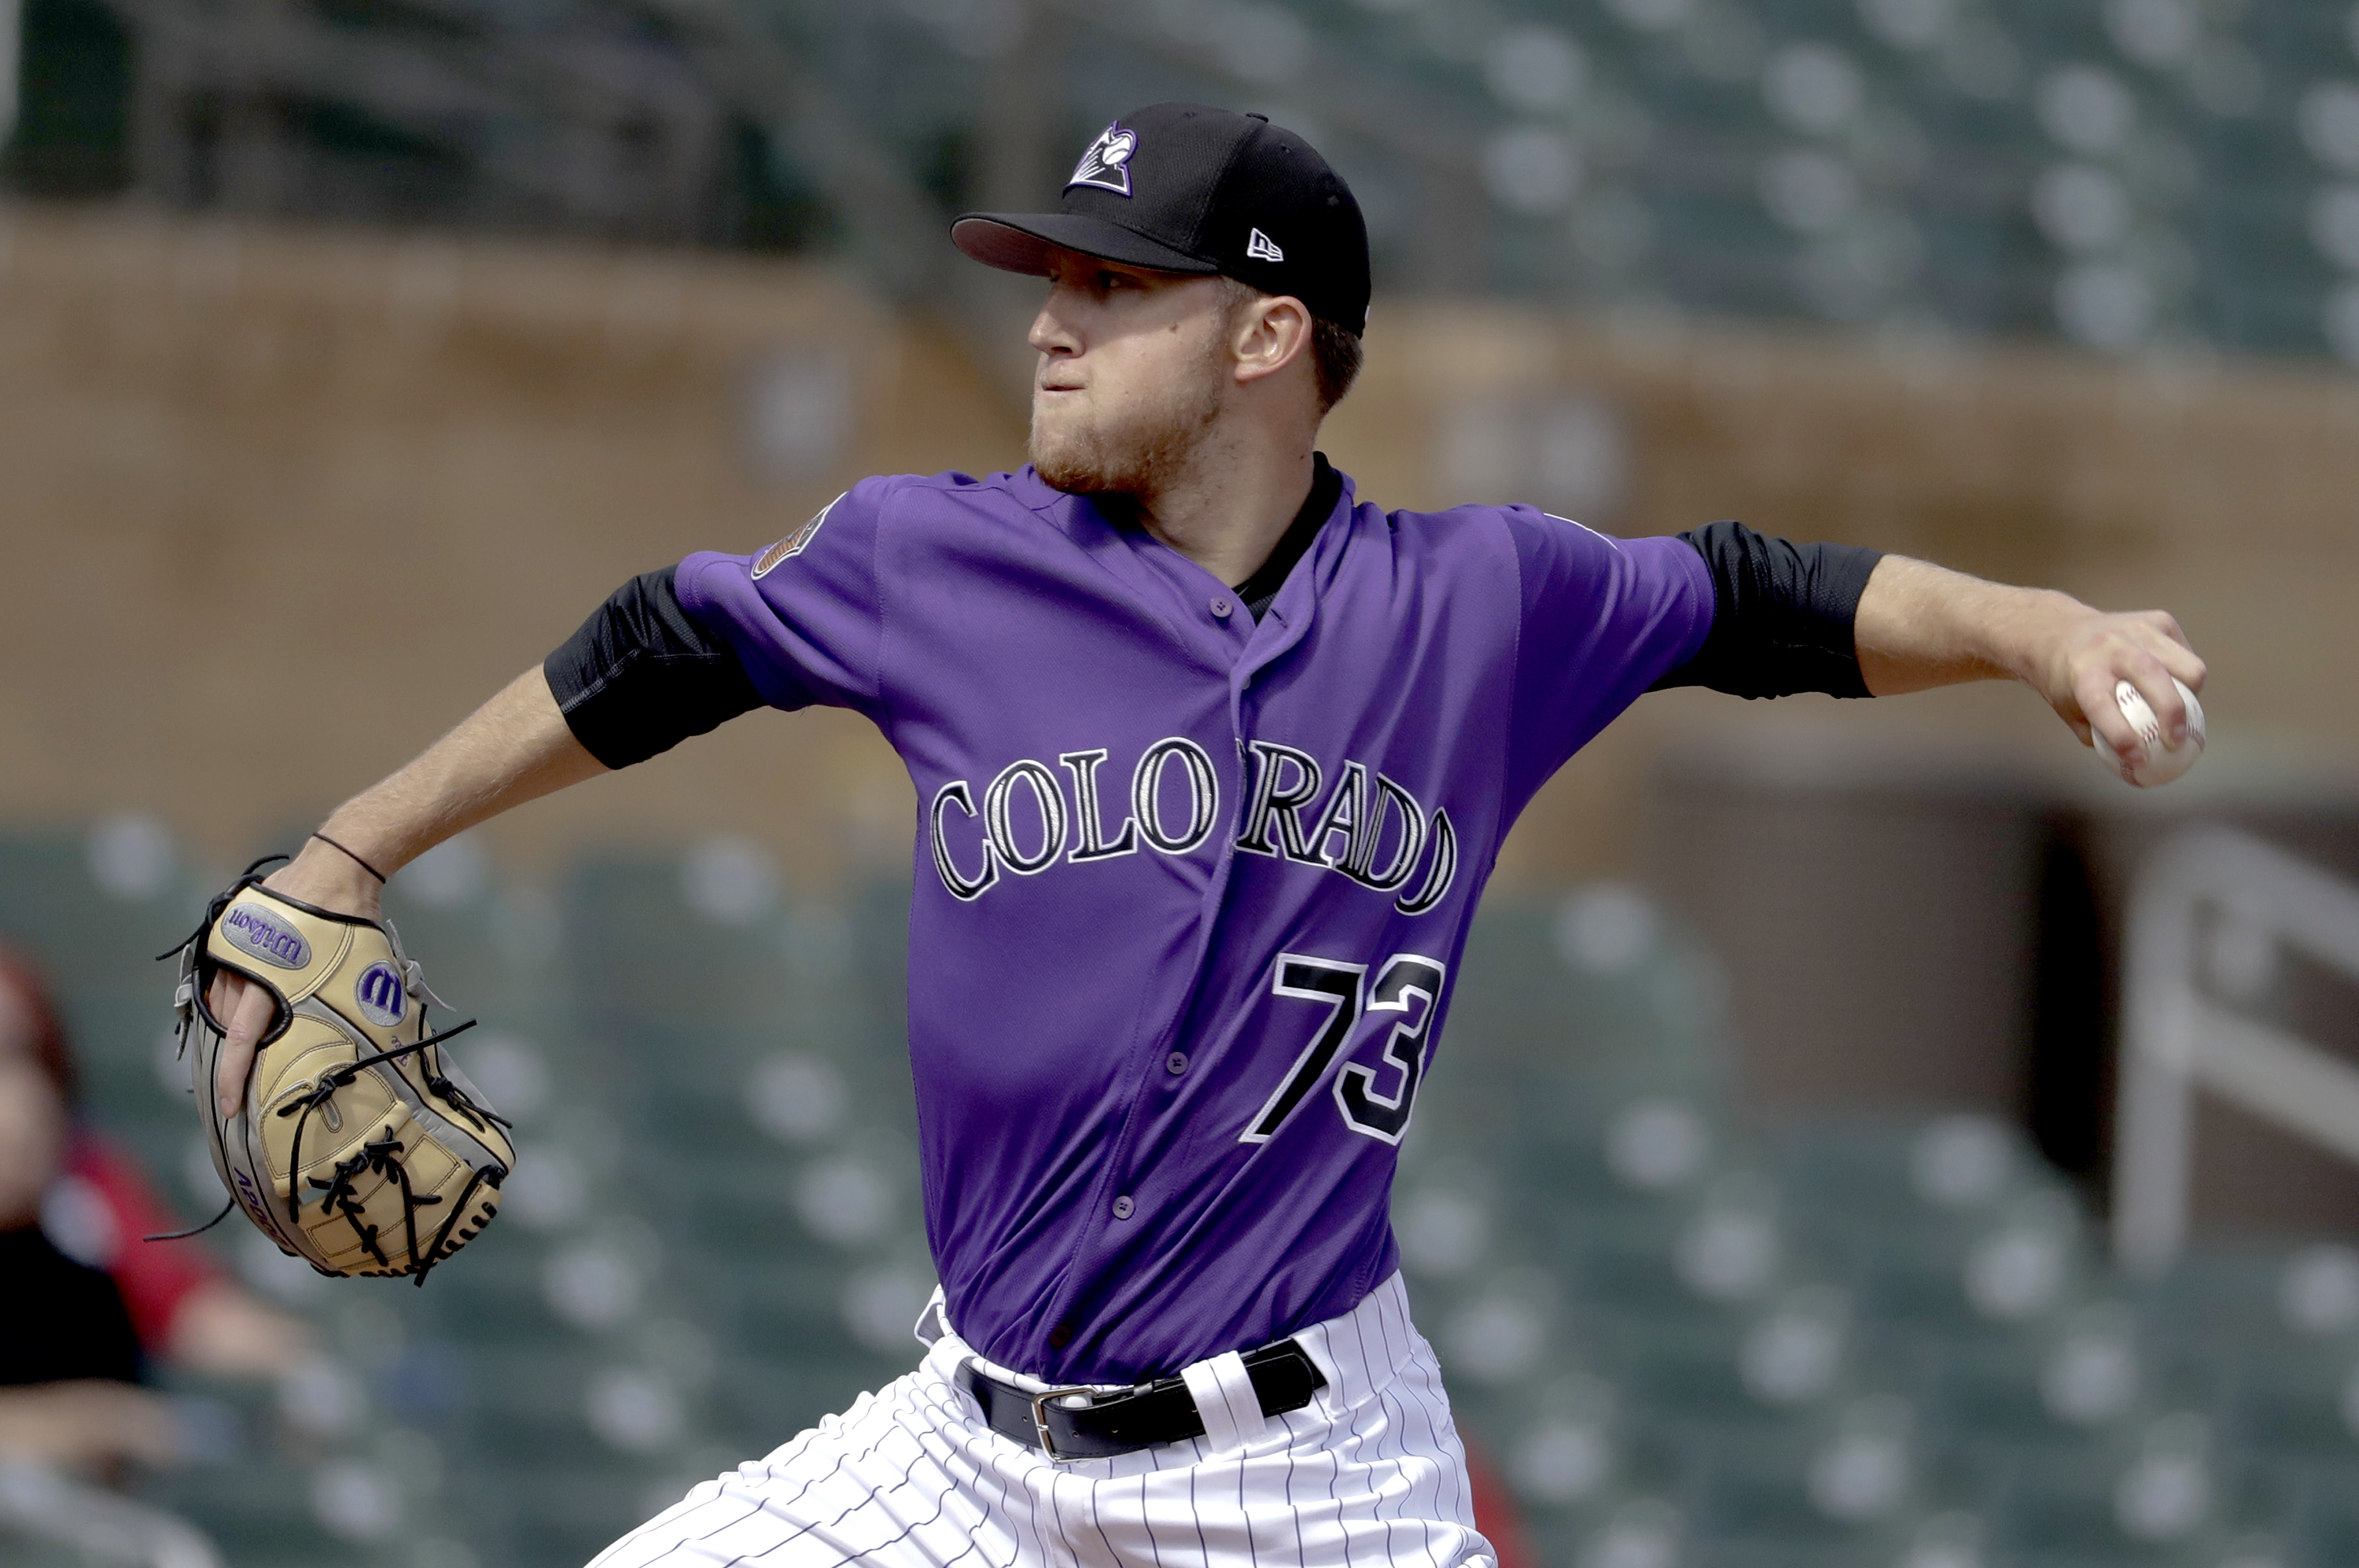 Photo: Rockies Kyle Freeland